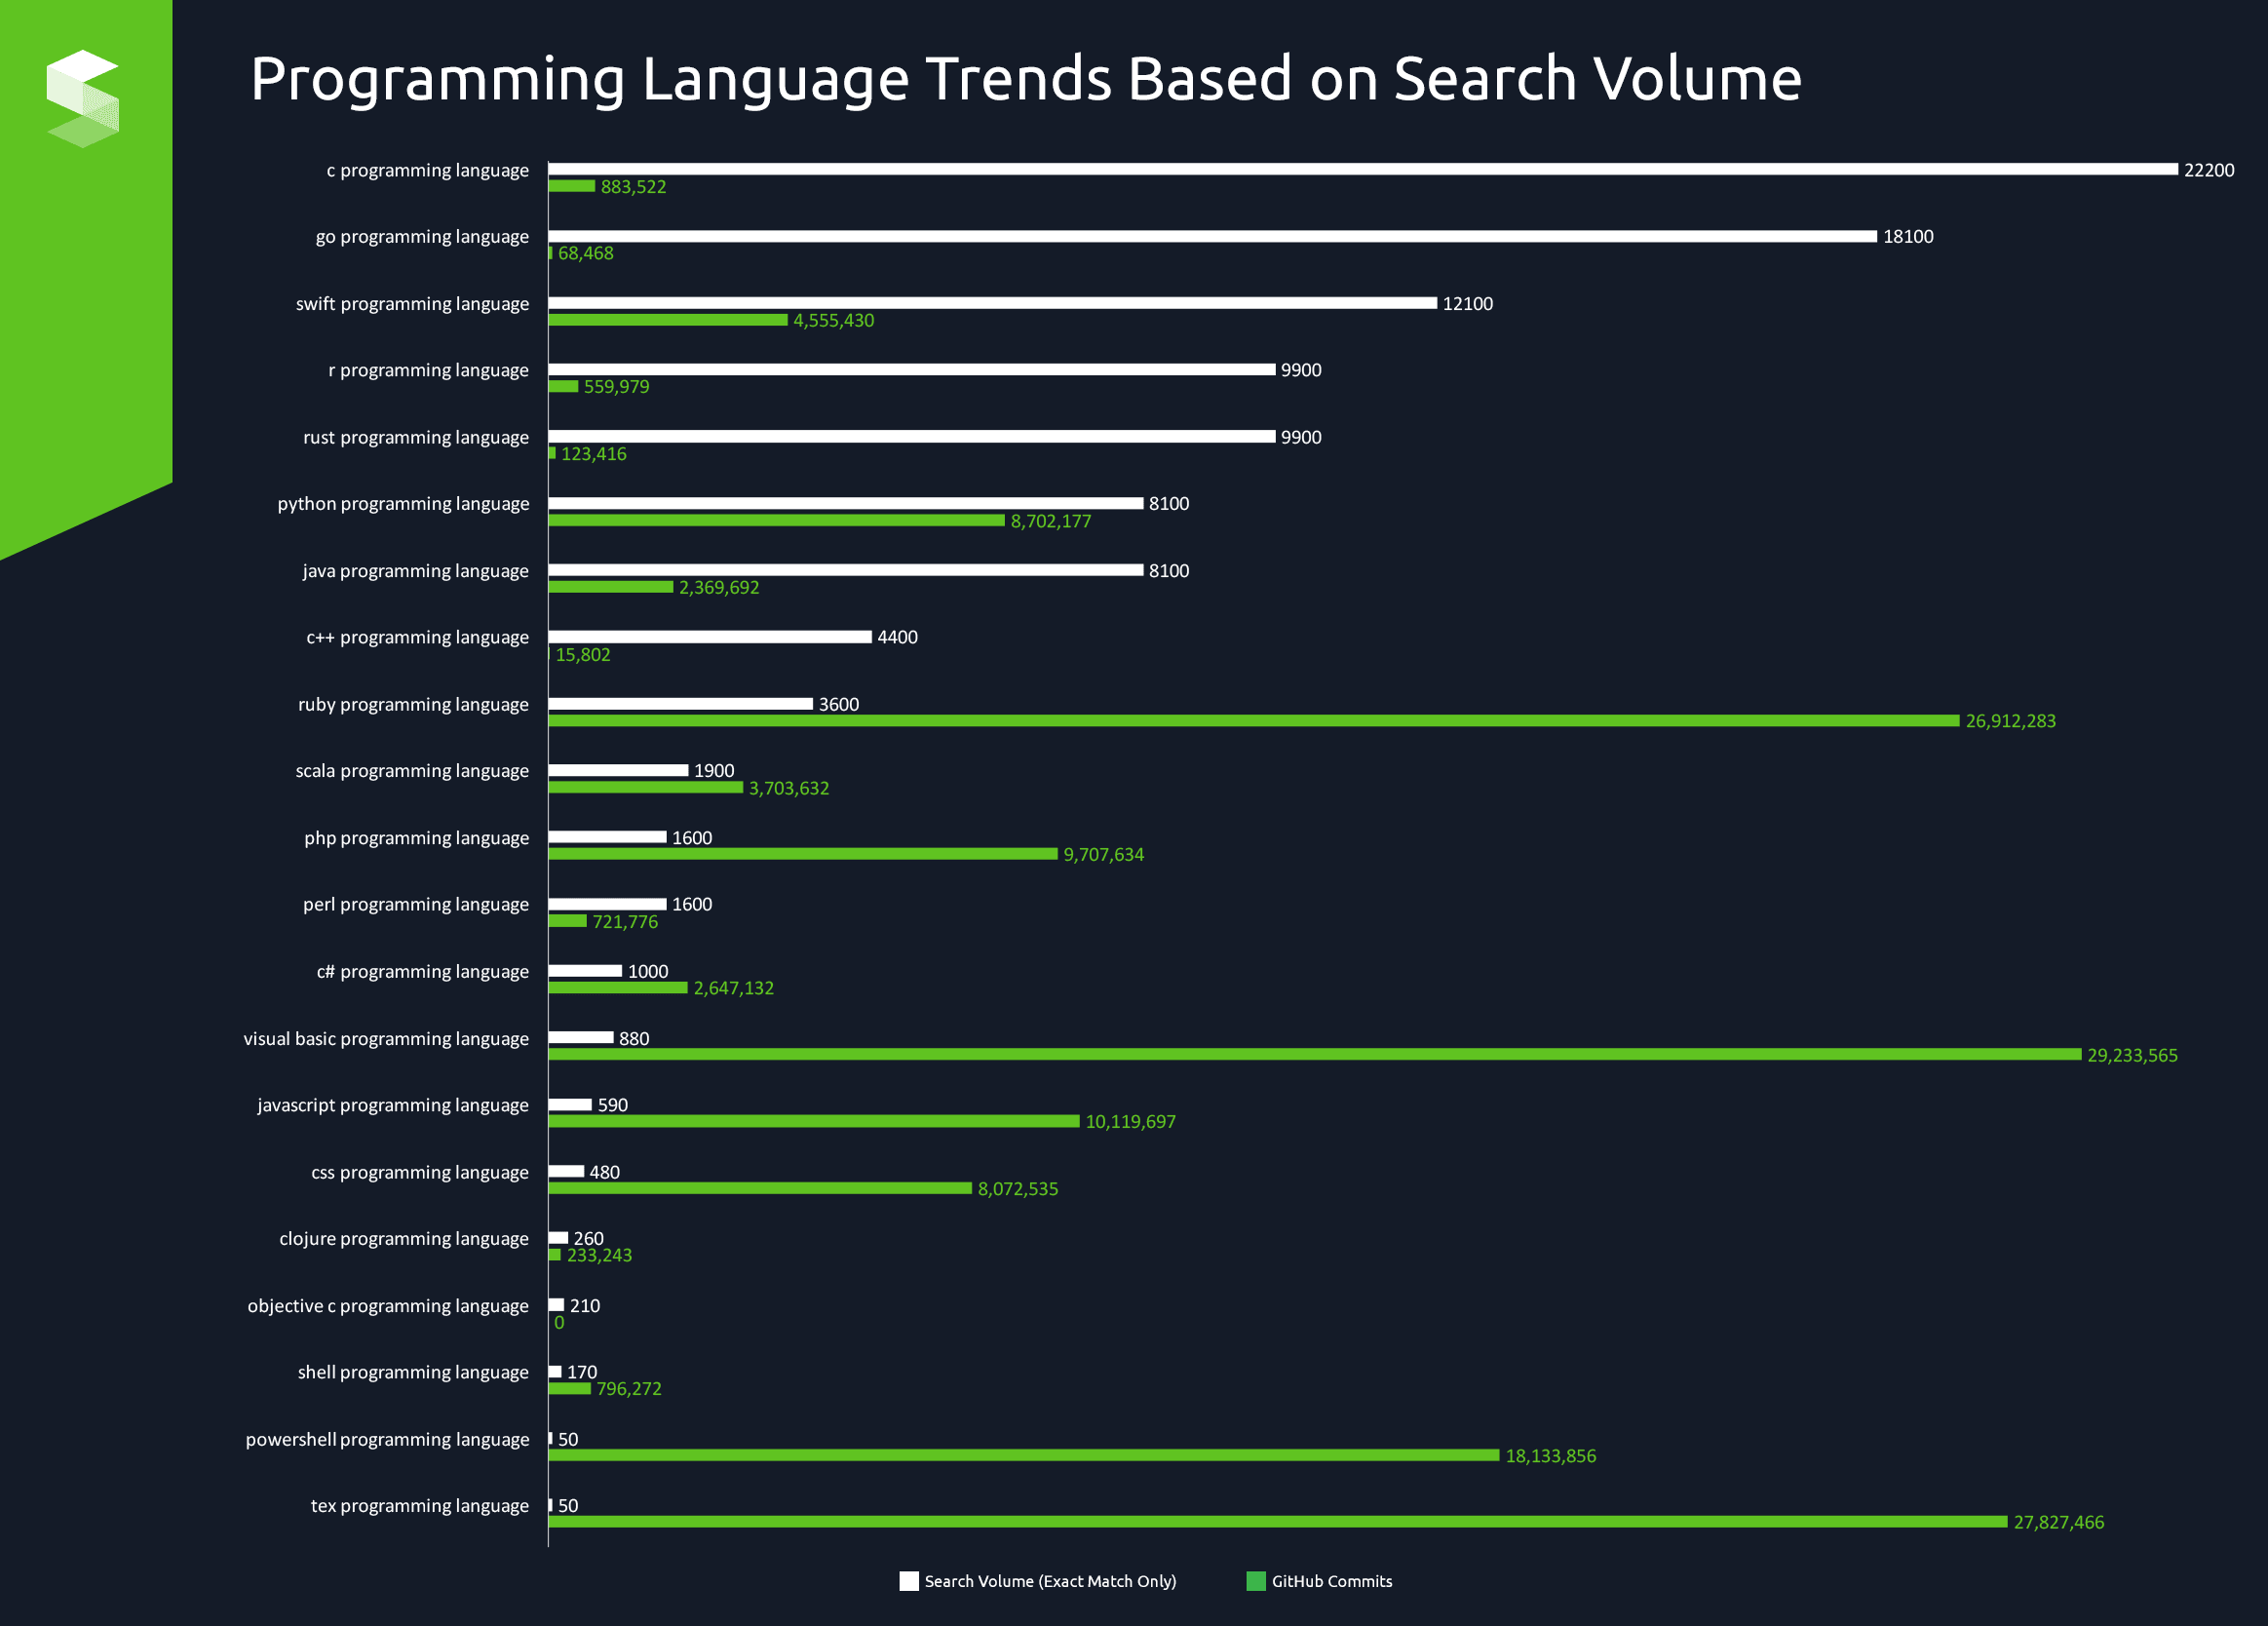 Programming Language Trends Based on Search Volume